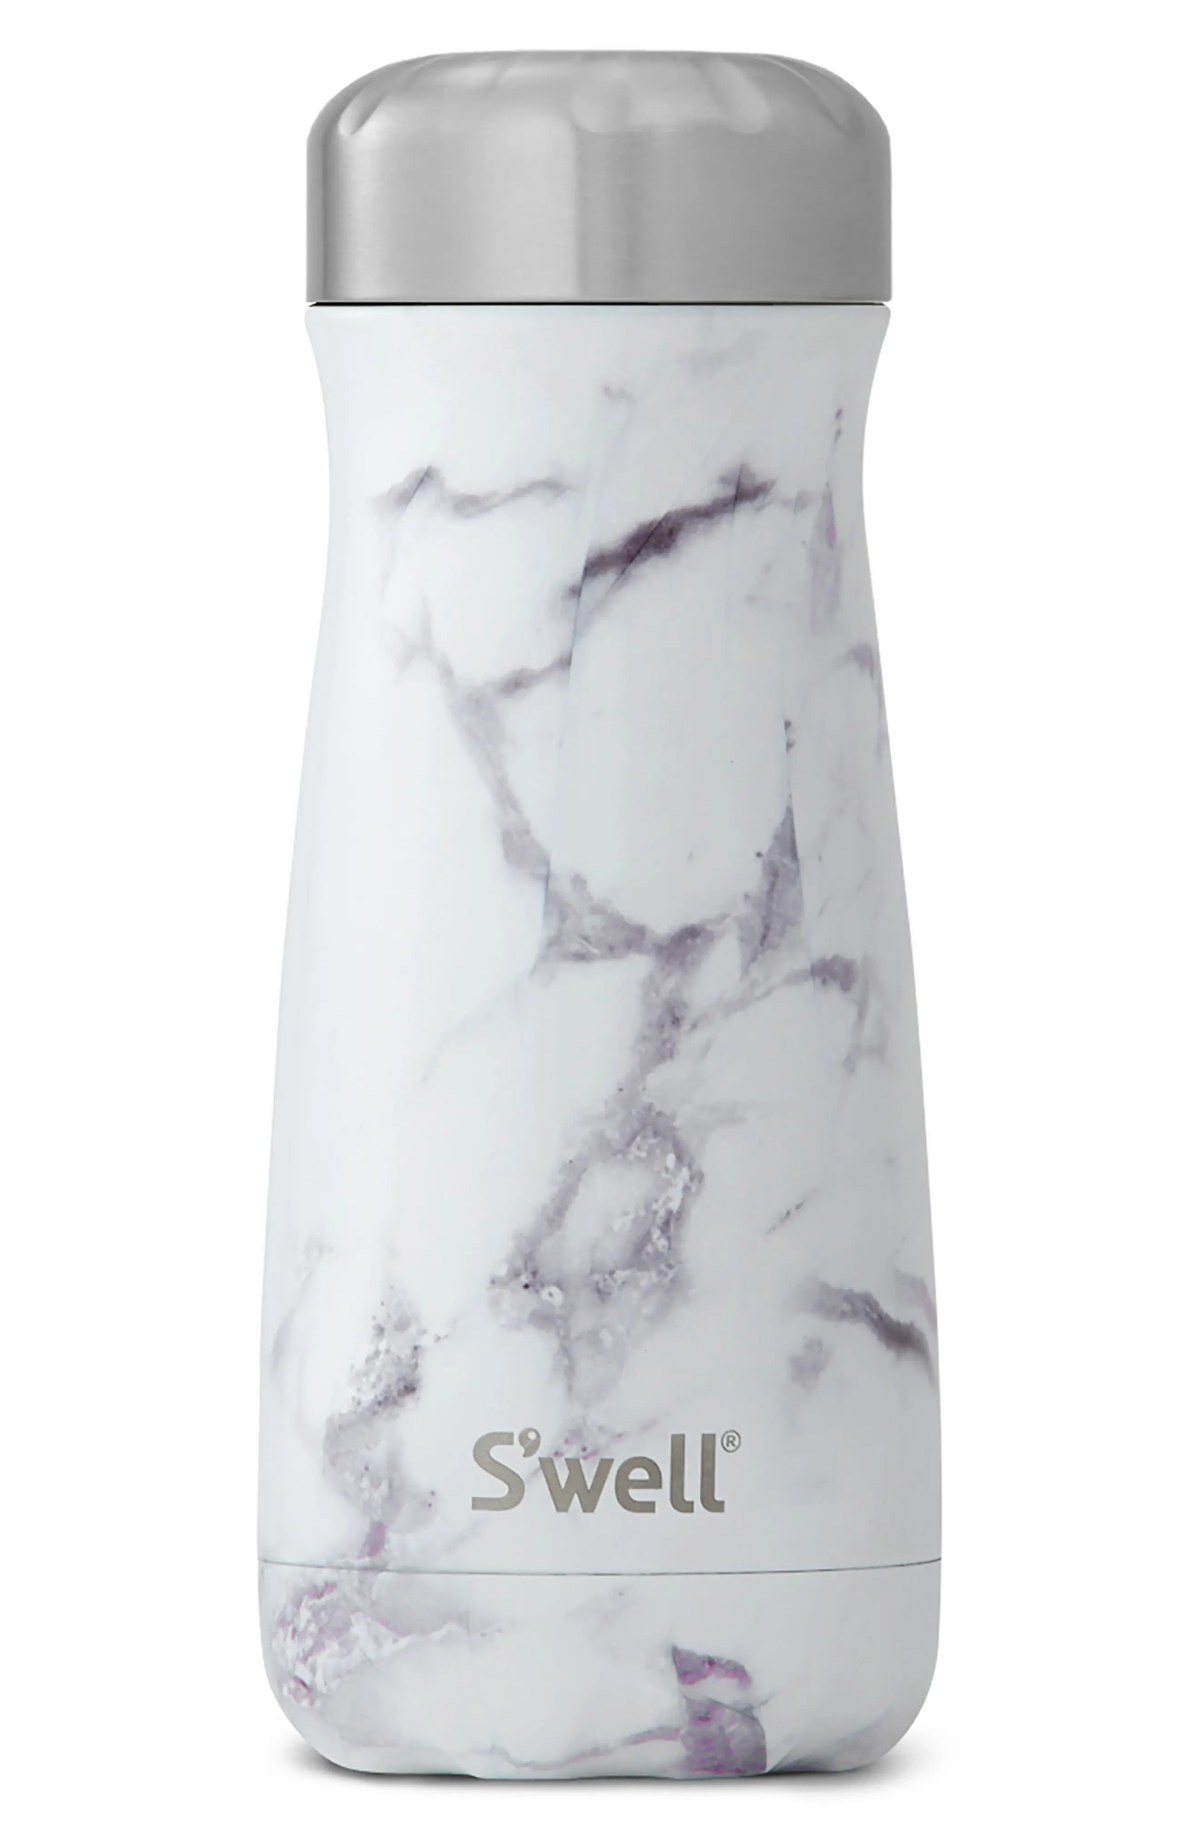 S'WELL Traveler White Marble 16-Ounce Insulated Stainless Steel Water Bottle, Main, color, WHITE MARBLE